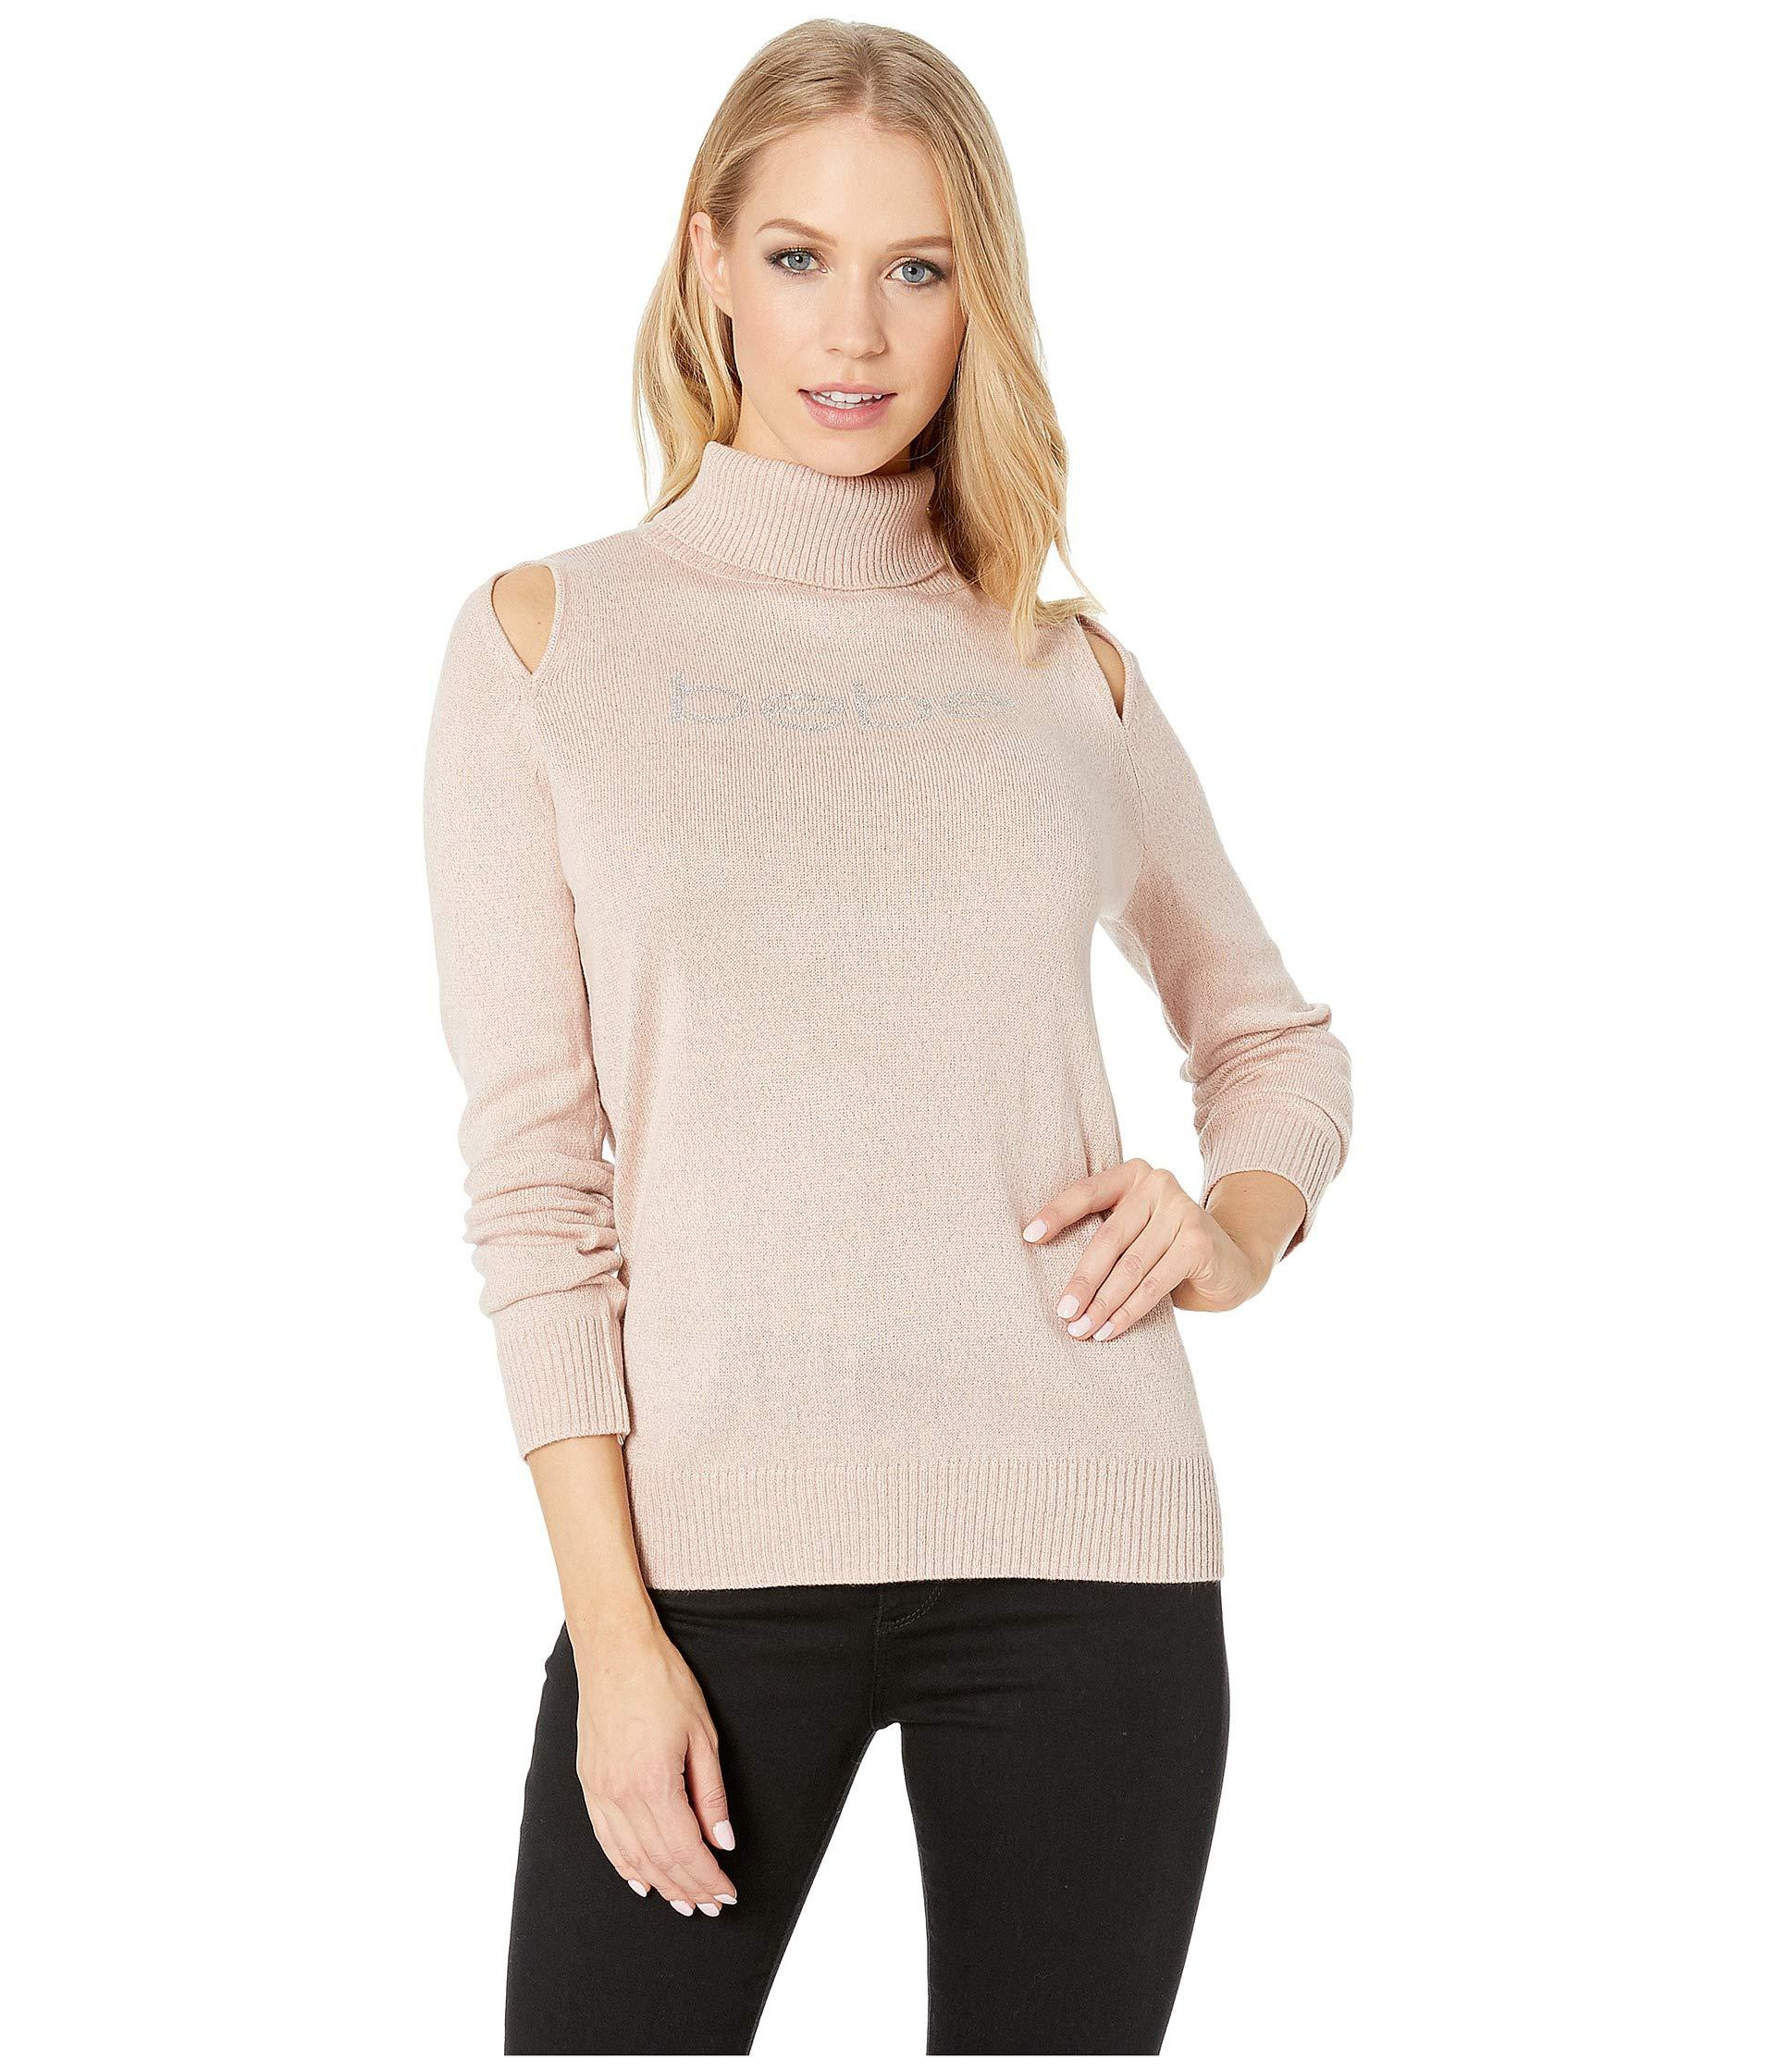 aa0e945a1d Lyst - Bebe Cut Out Shoulder Turtleneck Sweater in Natural